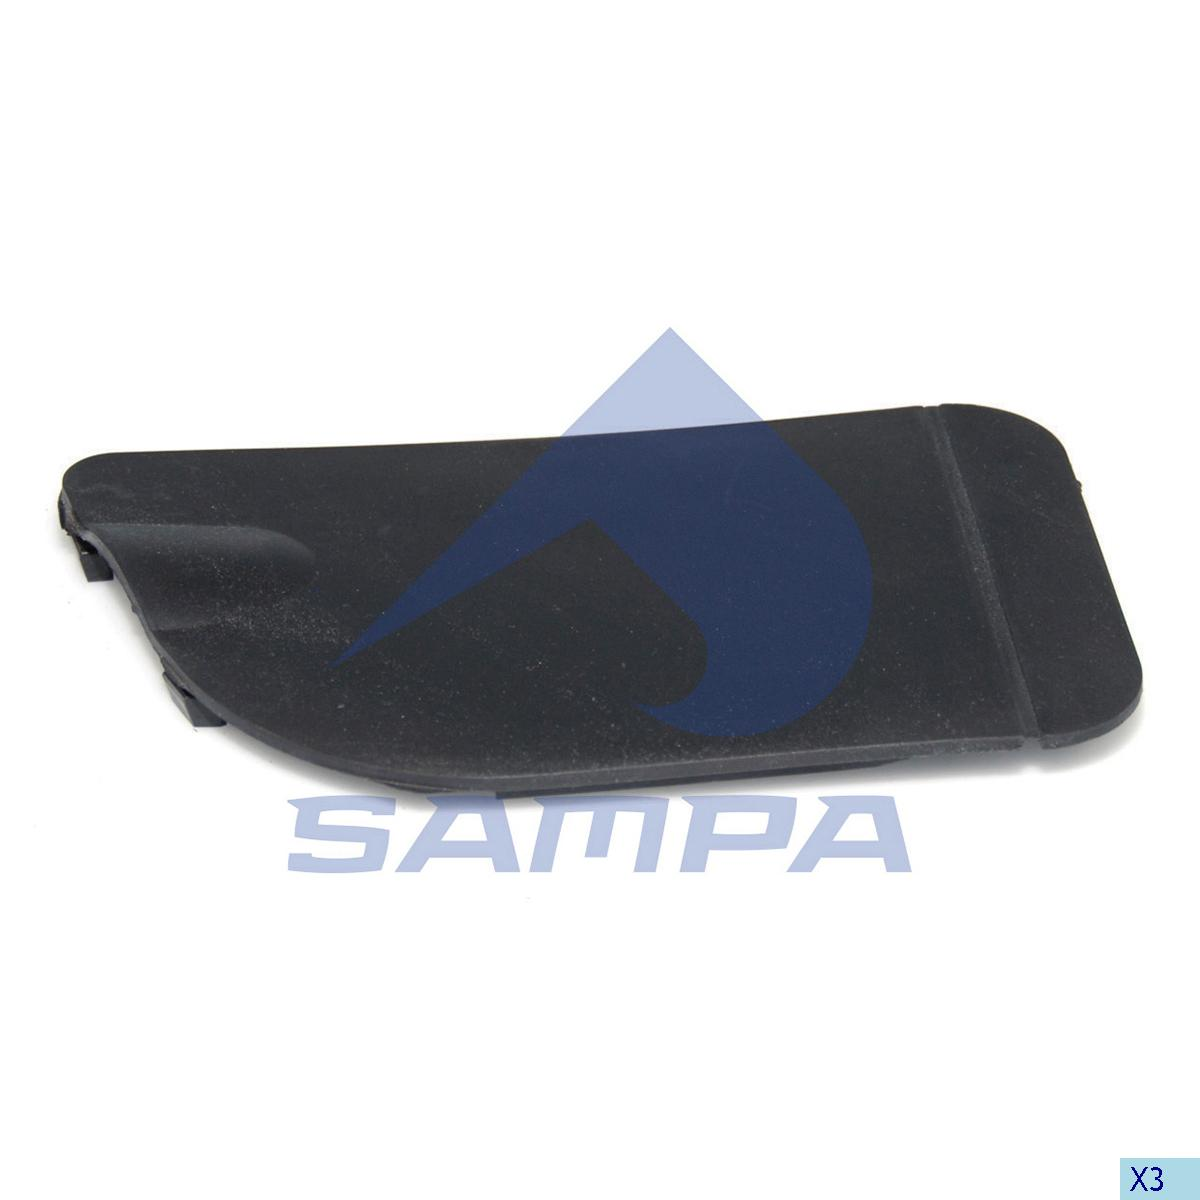 Cover, Bumper, R.V.I., Chassis